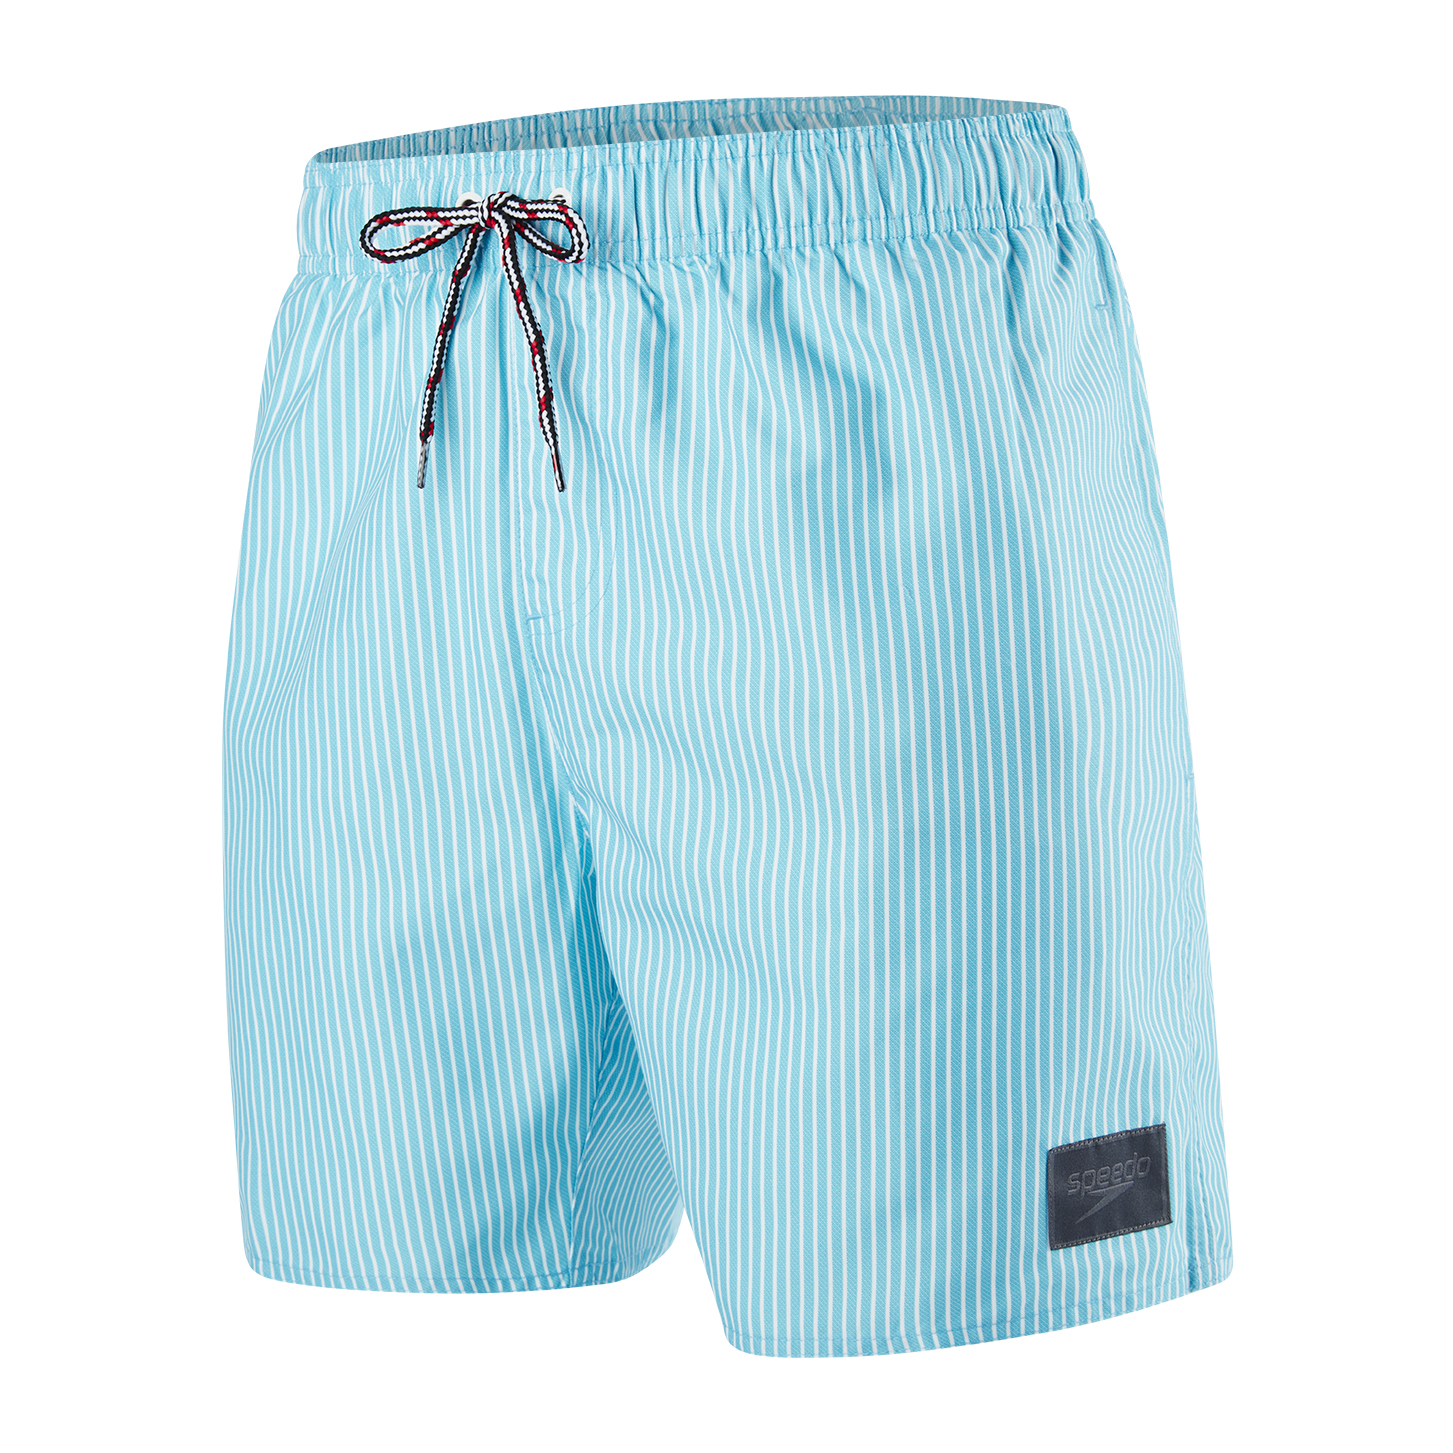 Speedo Mens Sun Stripe Printed Leisure 16 Watershort - Turquoise/White